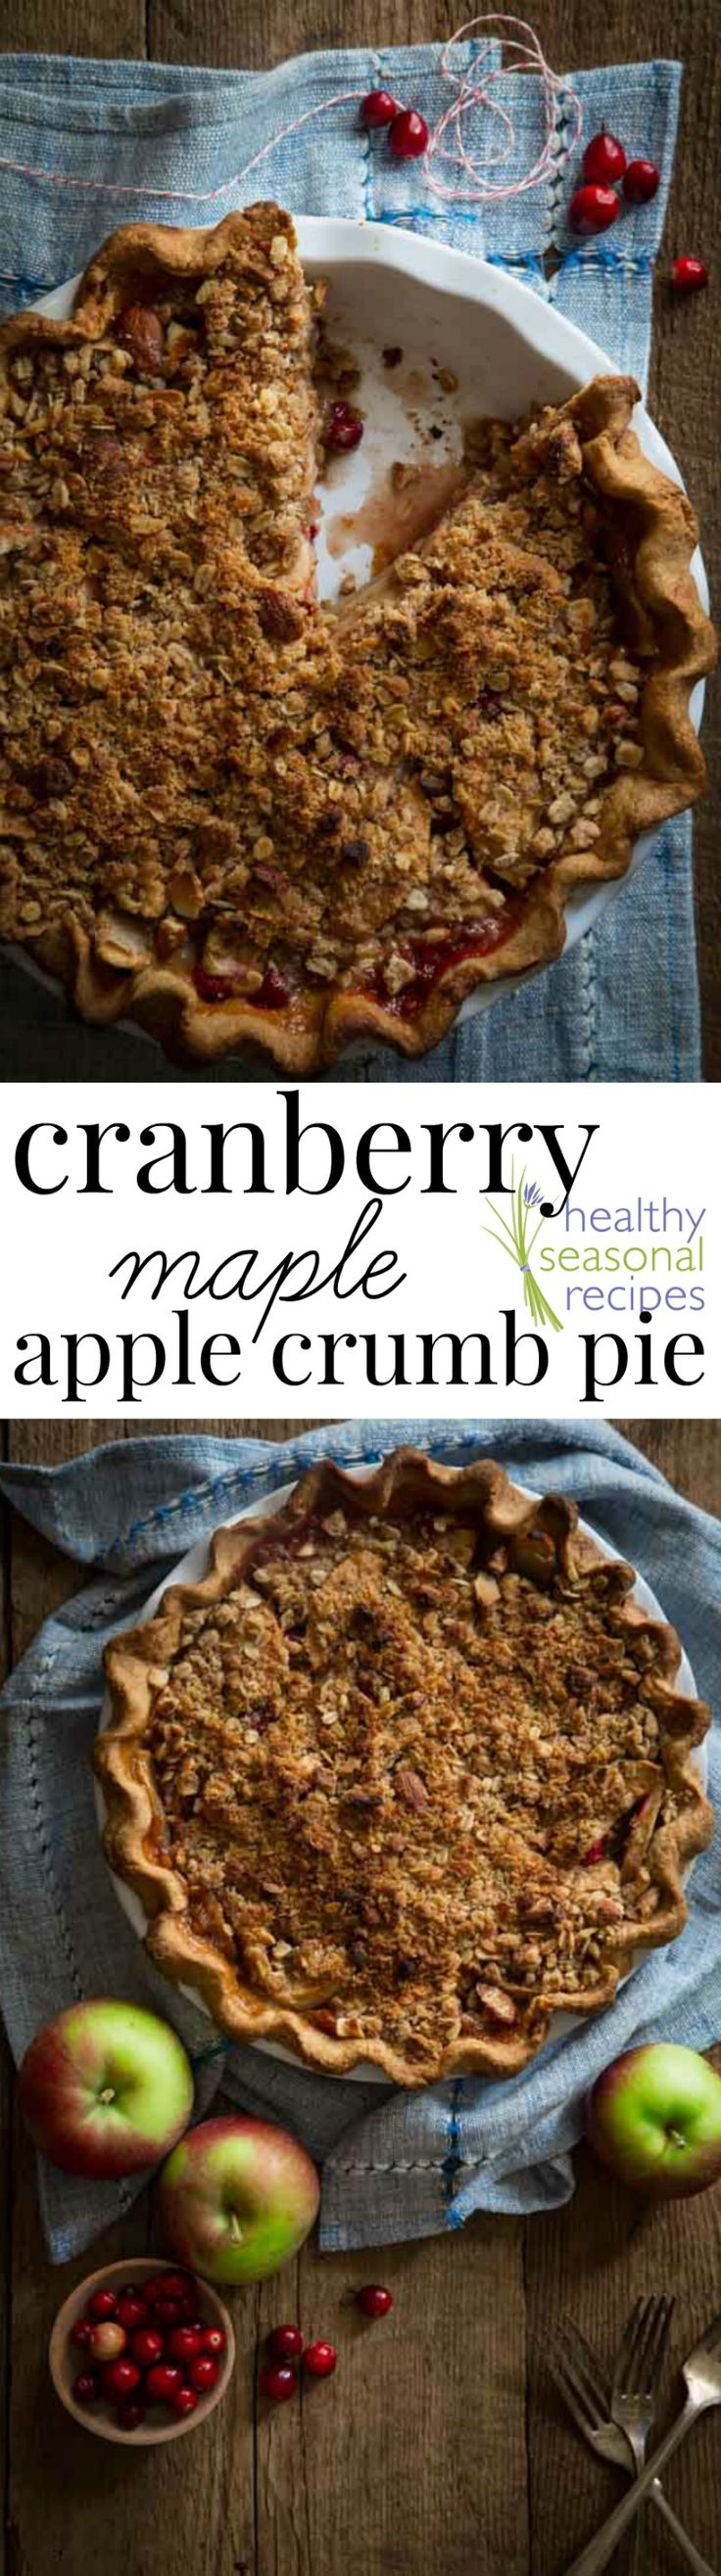 Blog post at Healthy Seasonal Recipes : I've been so excited to share this Cranberry Maple Apple Crumb Pie recipe I have been working on for Thanksgiving. It has a deep dish whol[..]